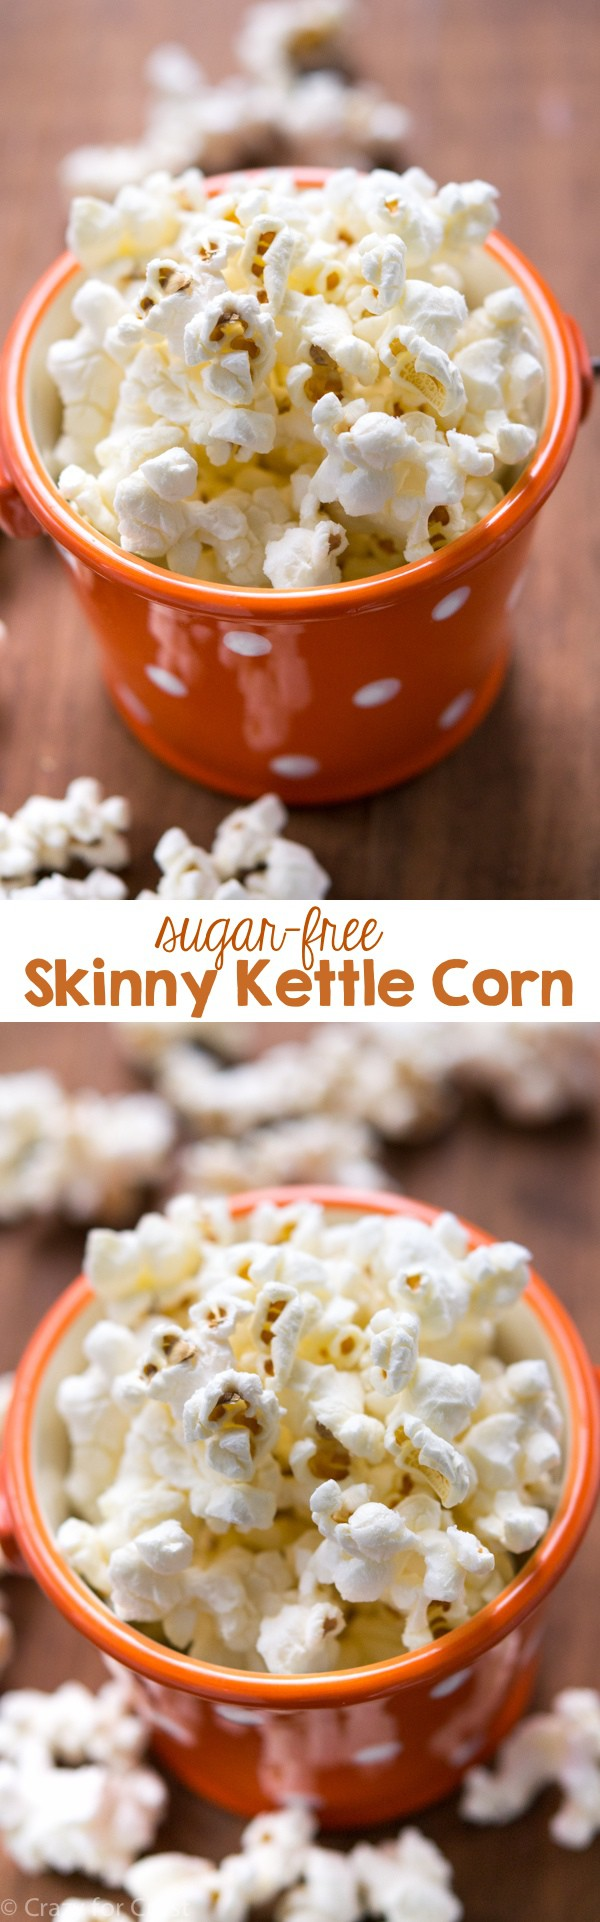 Skinny Sugar Free Kettle Corn is the perfect snack when you're counting calories.